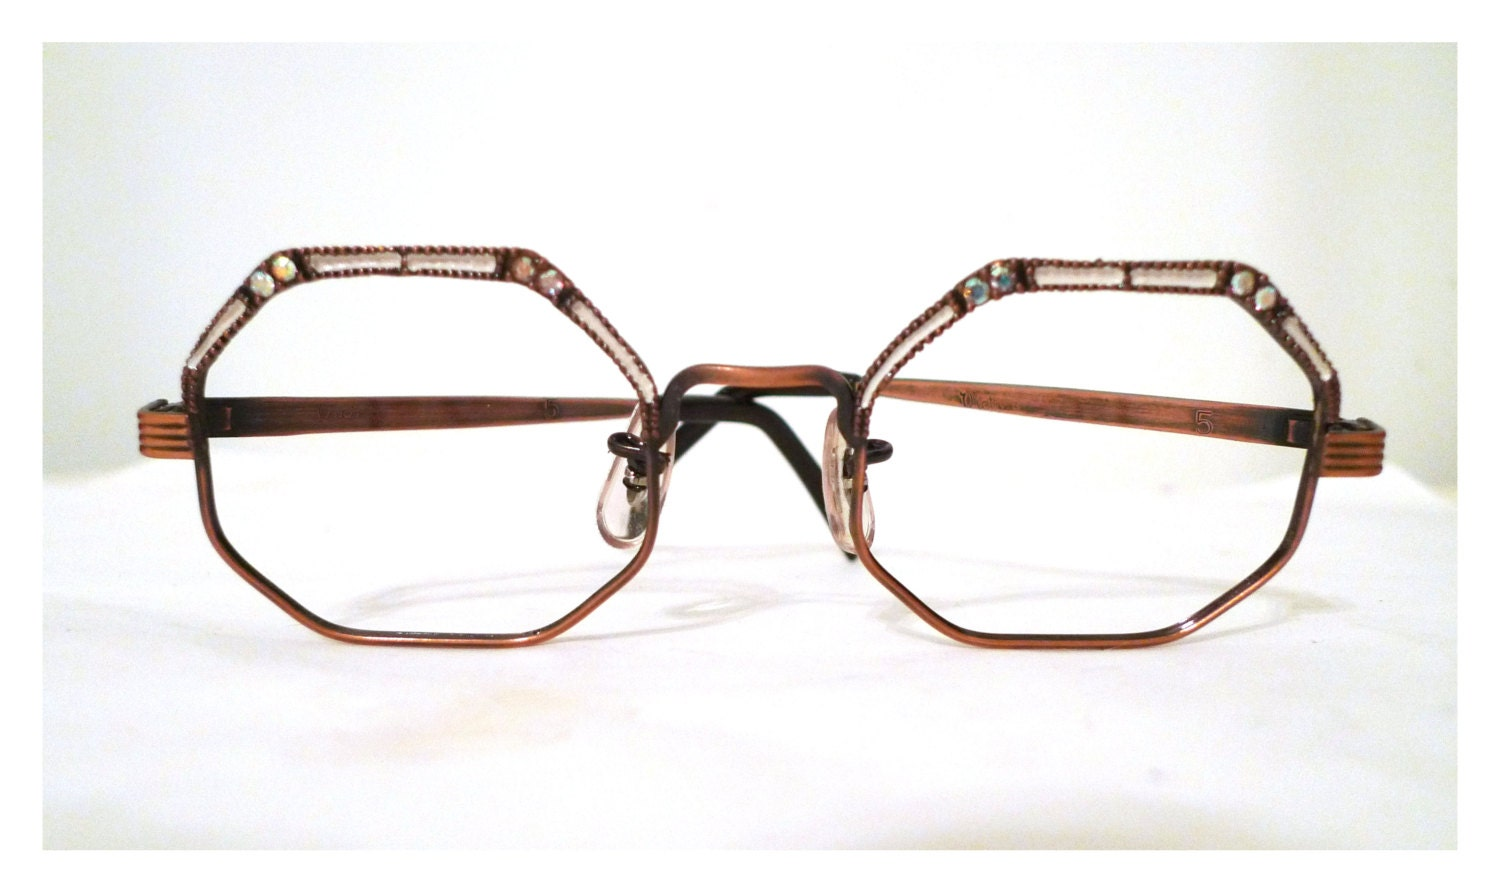 12K GF Rhinestone Hexagonal Eyeglass Frames with Bronze